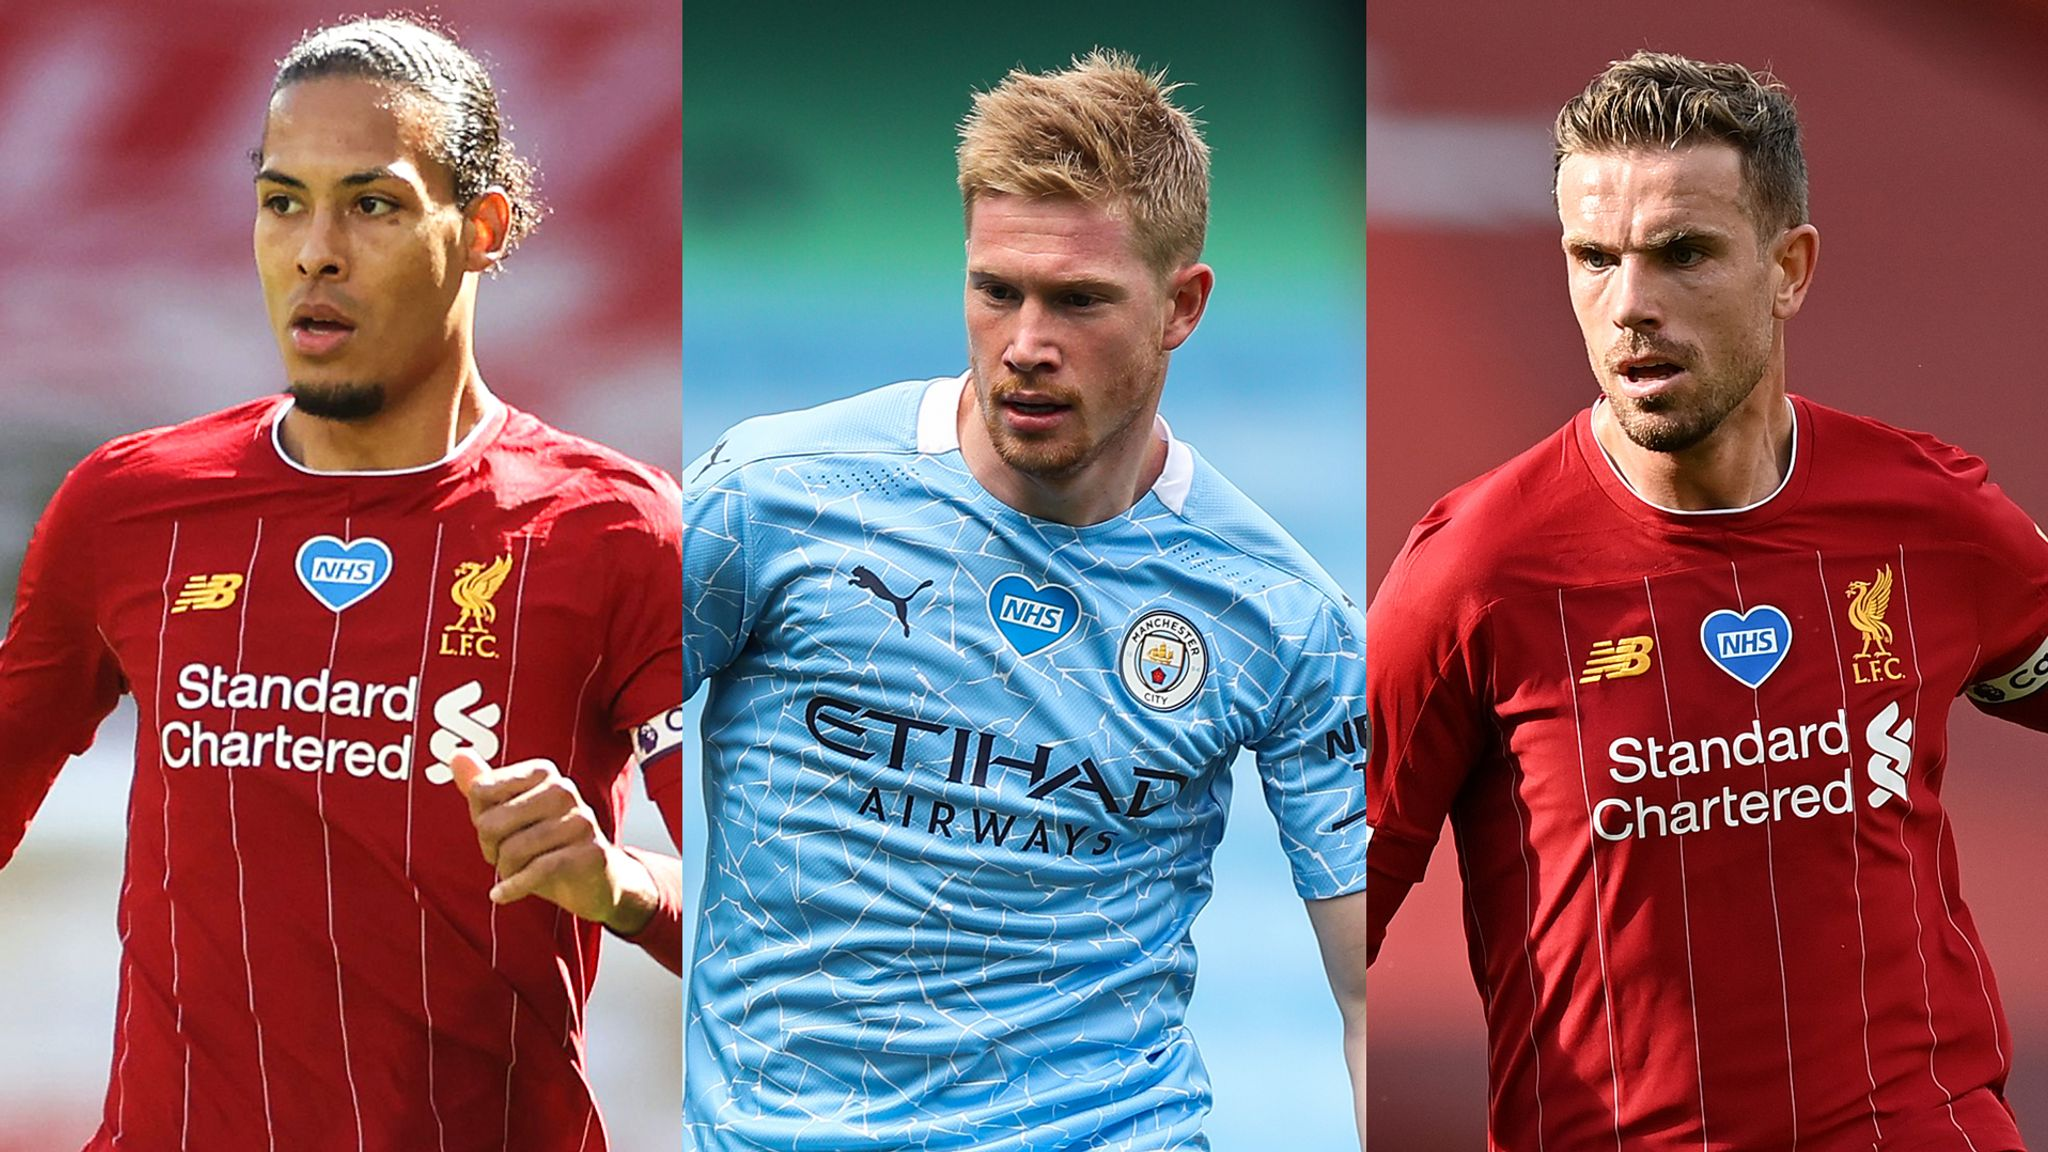 Premier league young player of the year betting on sports bilbao barcelona betting tips